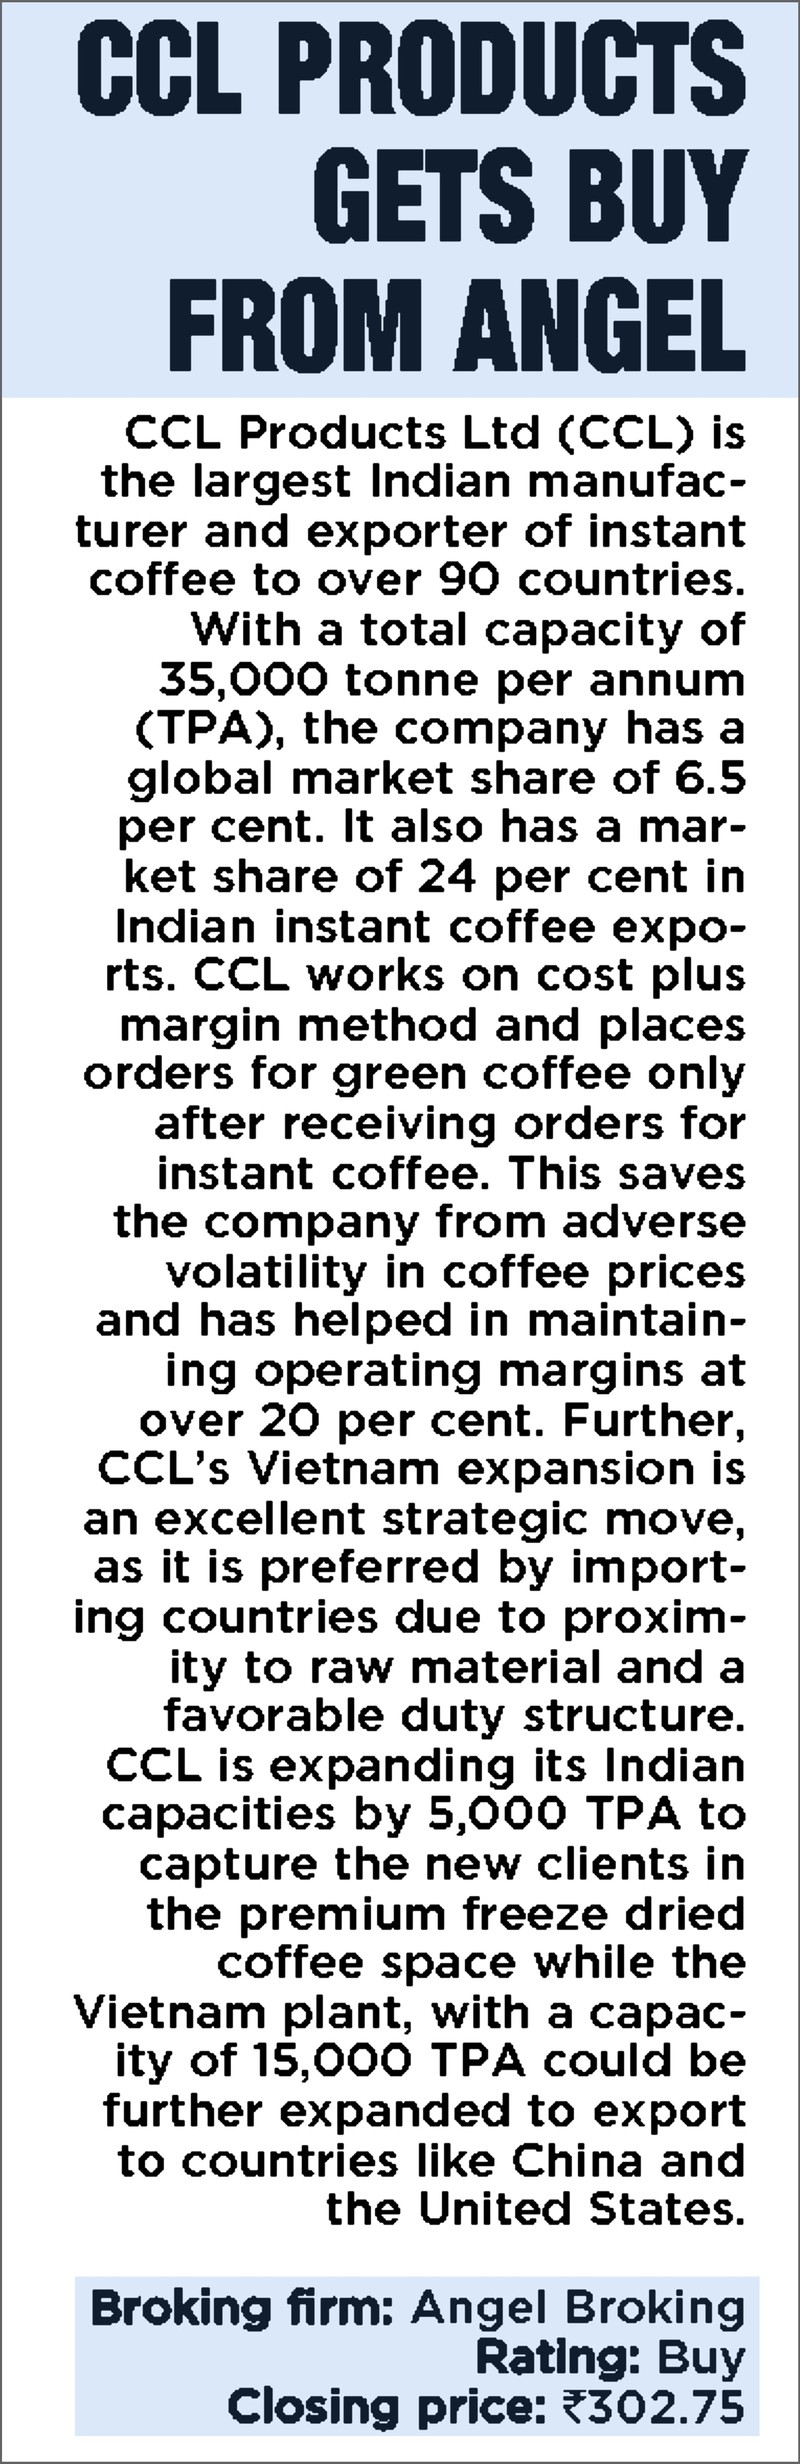 CCL Products gets Buy from Angel